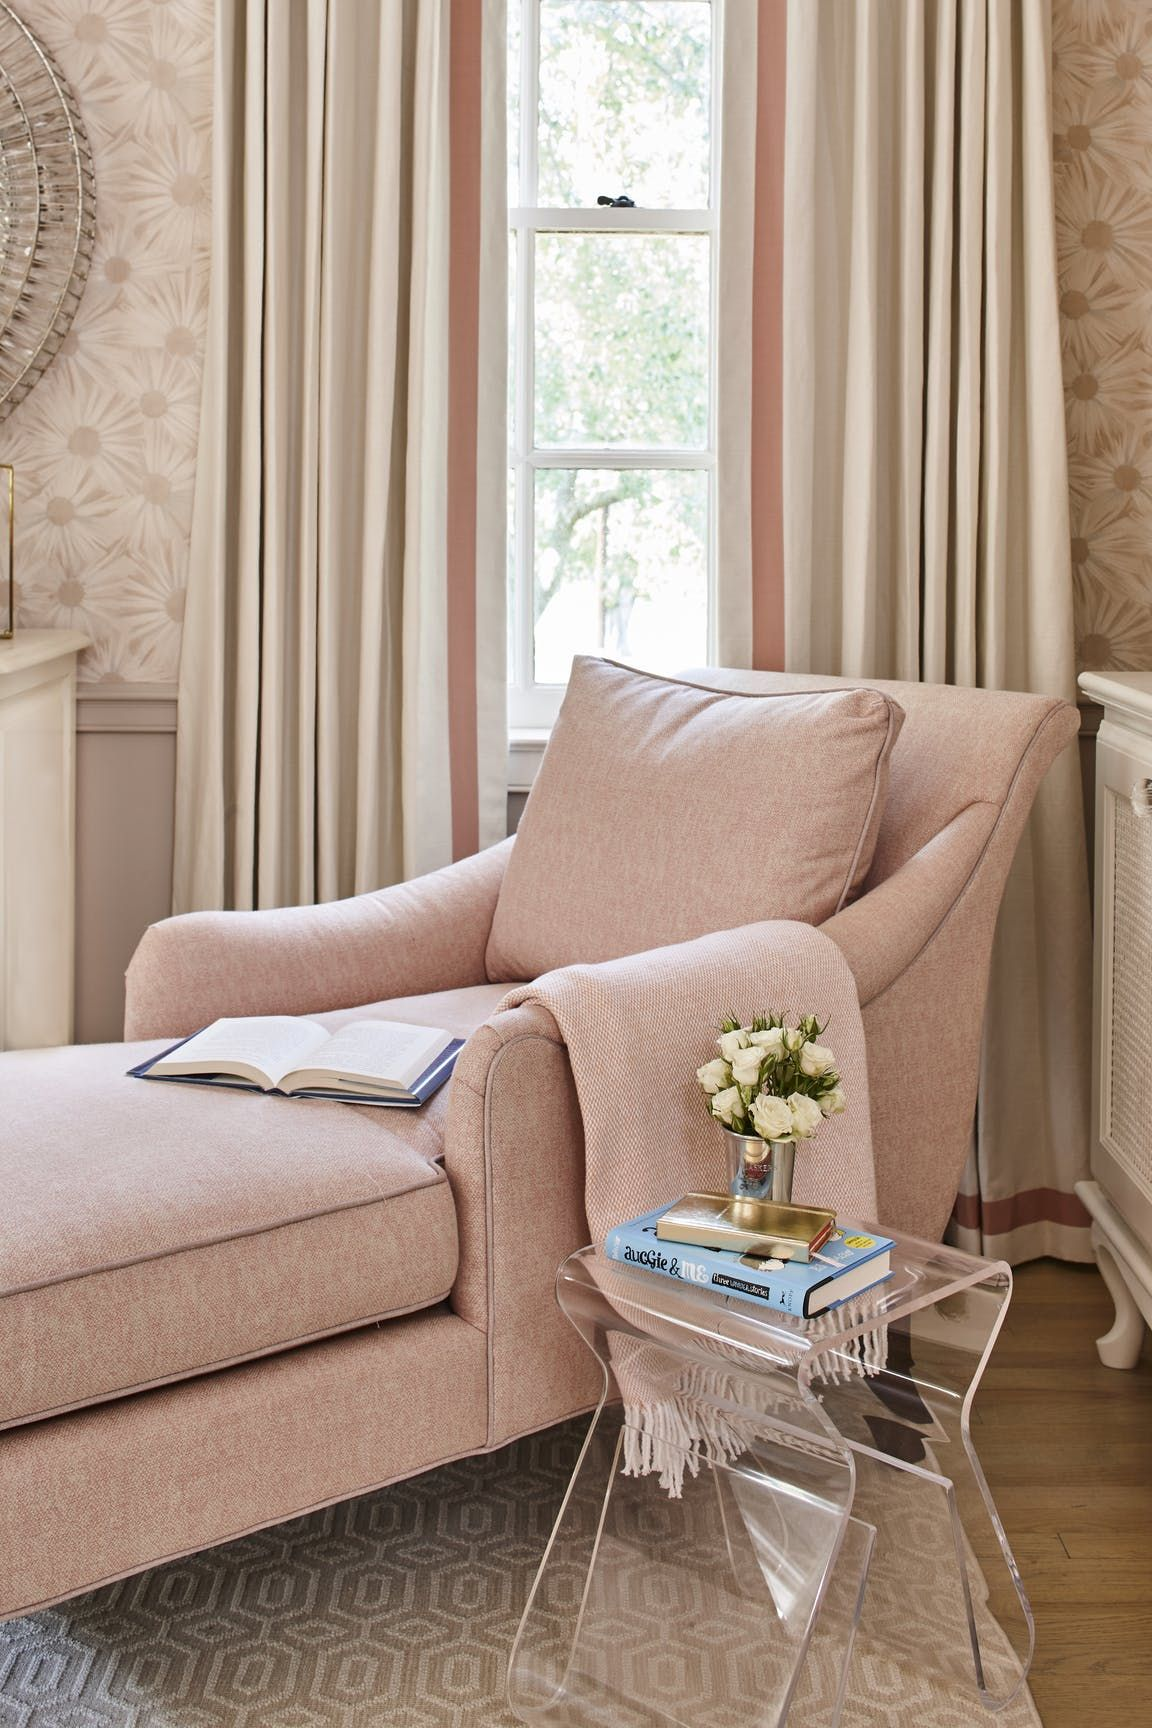 Girl S Room With Blush Chaise Lounge Chair And Soft Blush